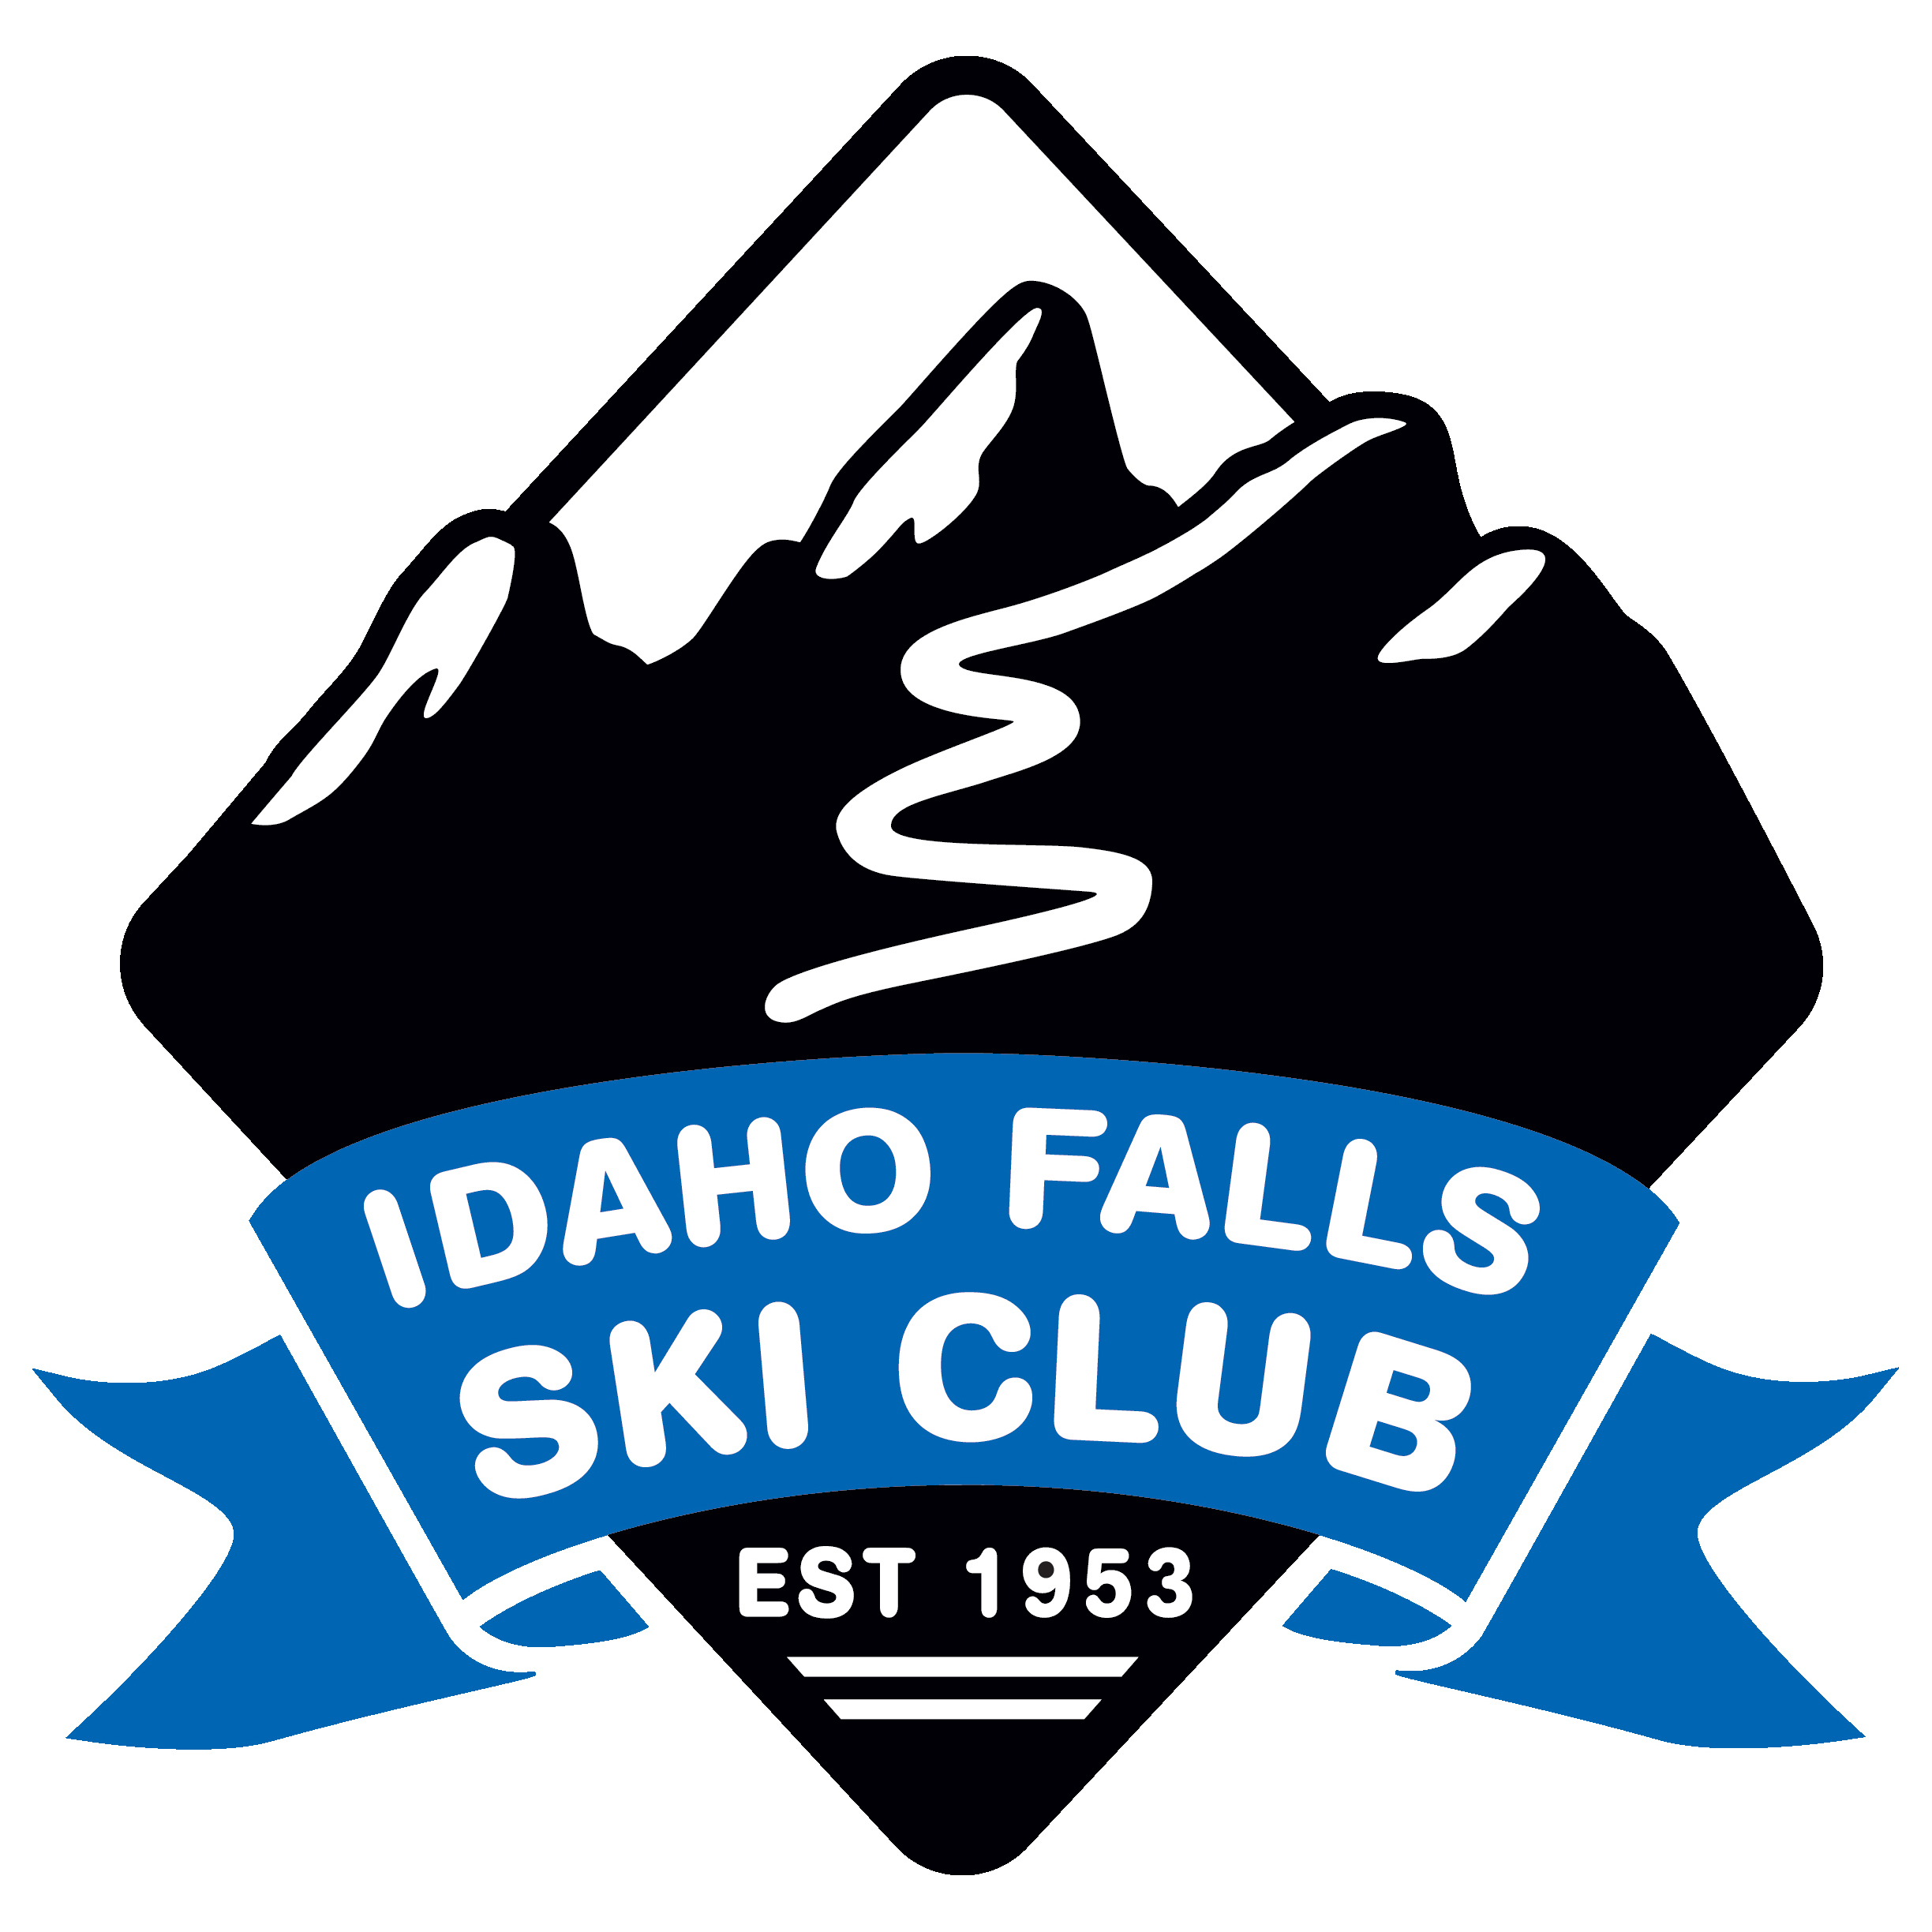 Idaho Falls Ski Club